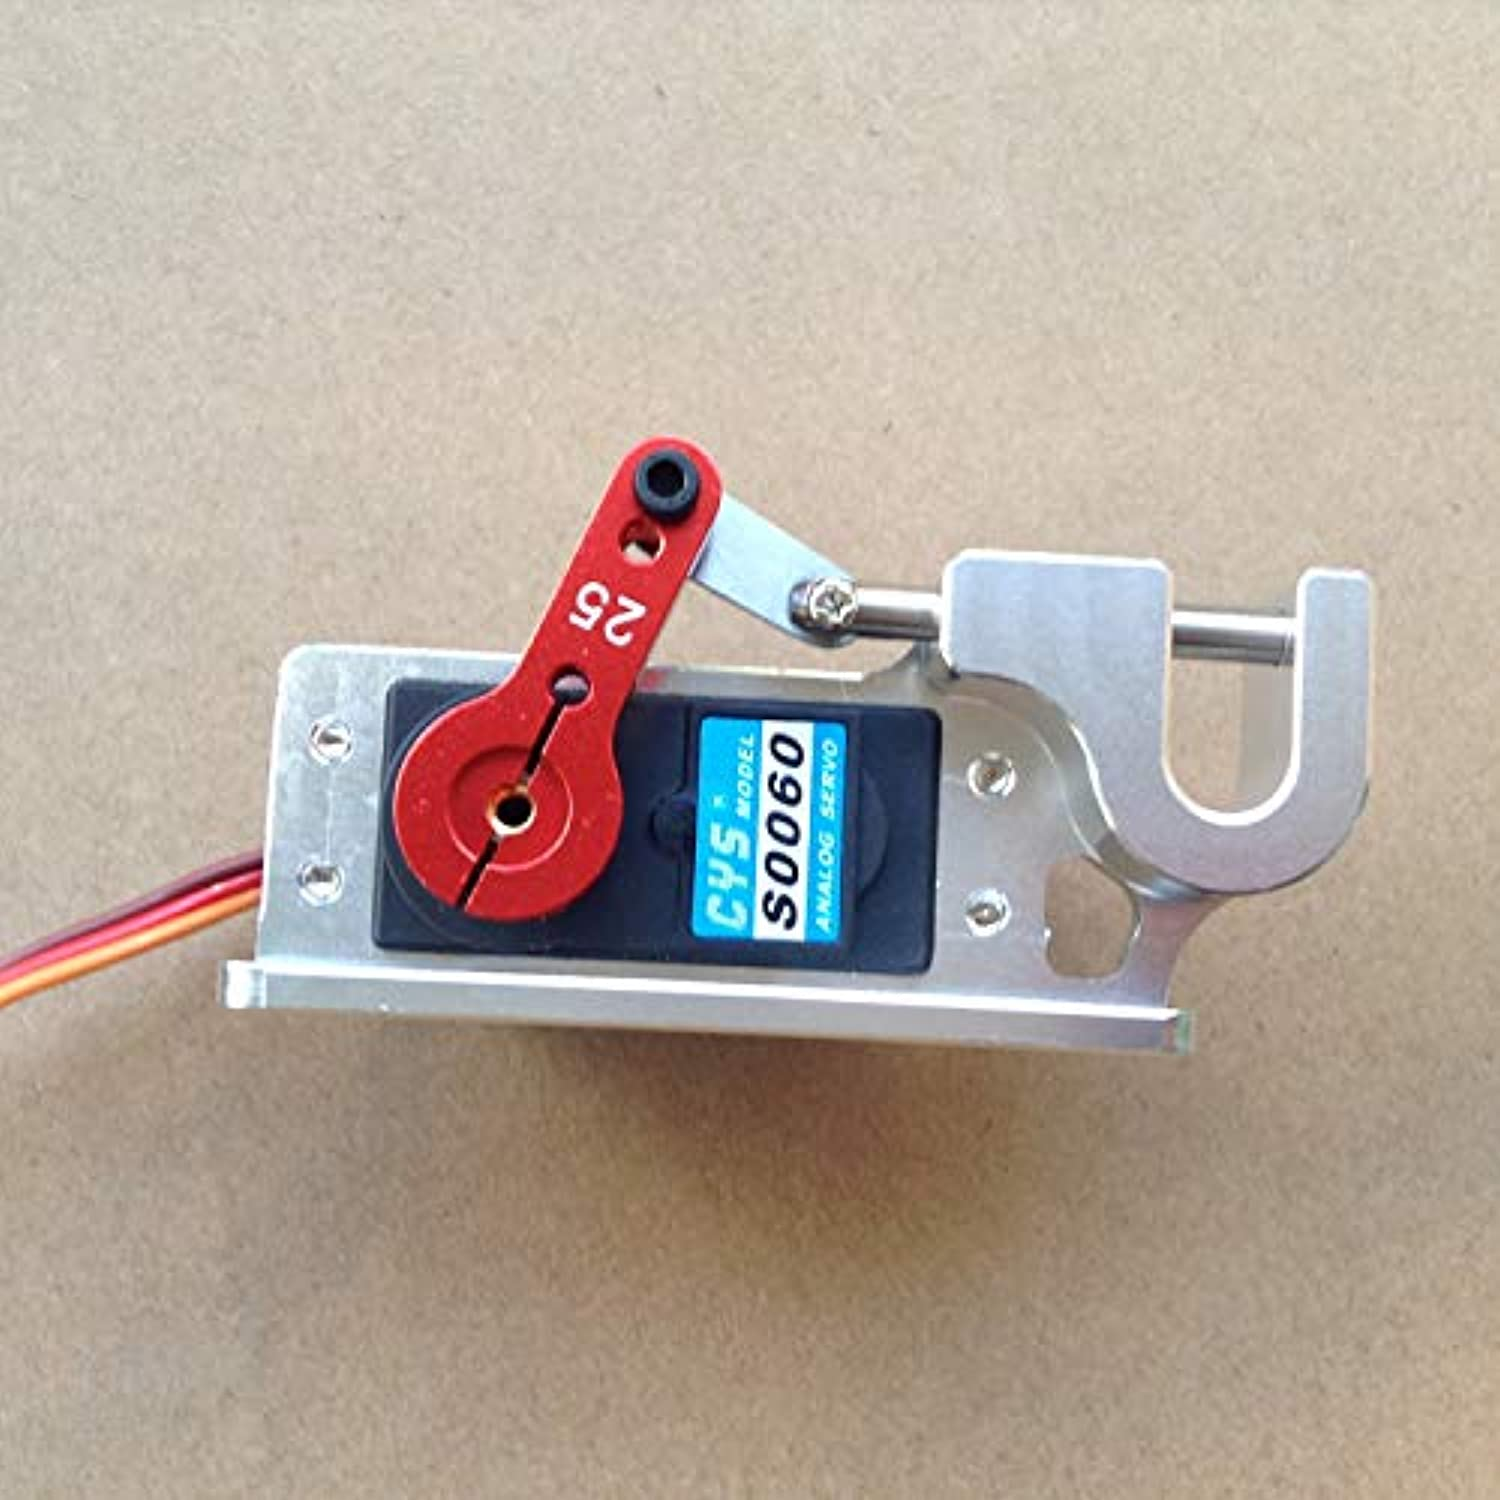 RC Boat Servo Dispenser Parabolic Switch Device Precision Large Torque Throw Device for Bait Boat w wo Servo Steering Arm   Without servo